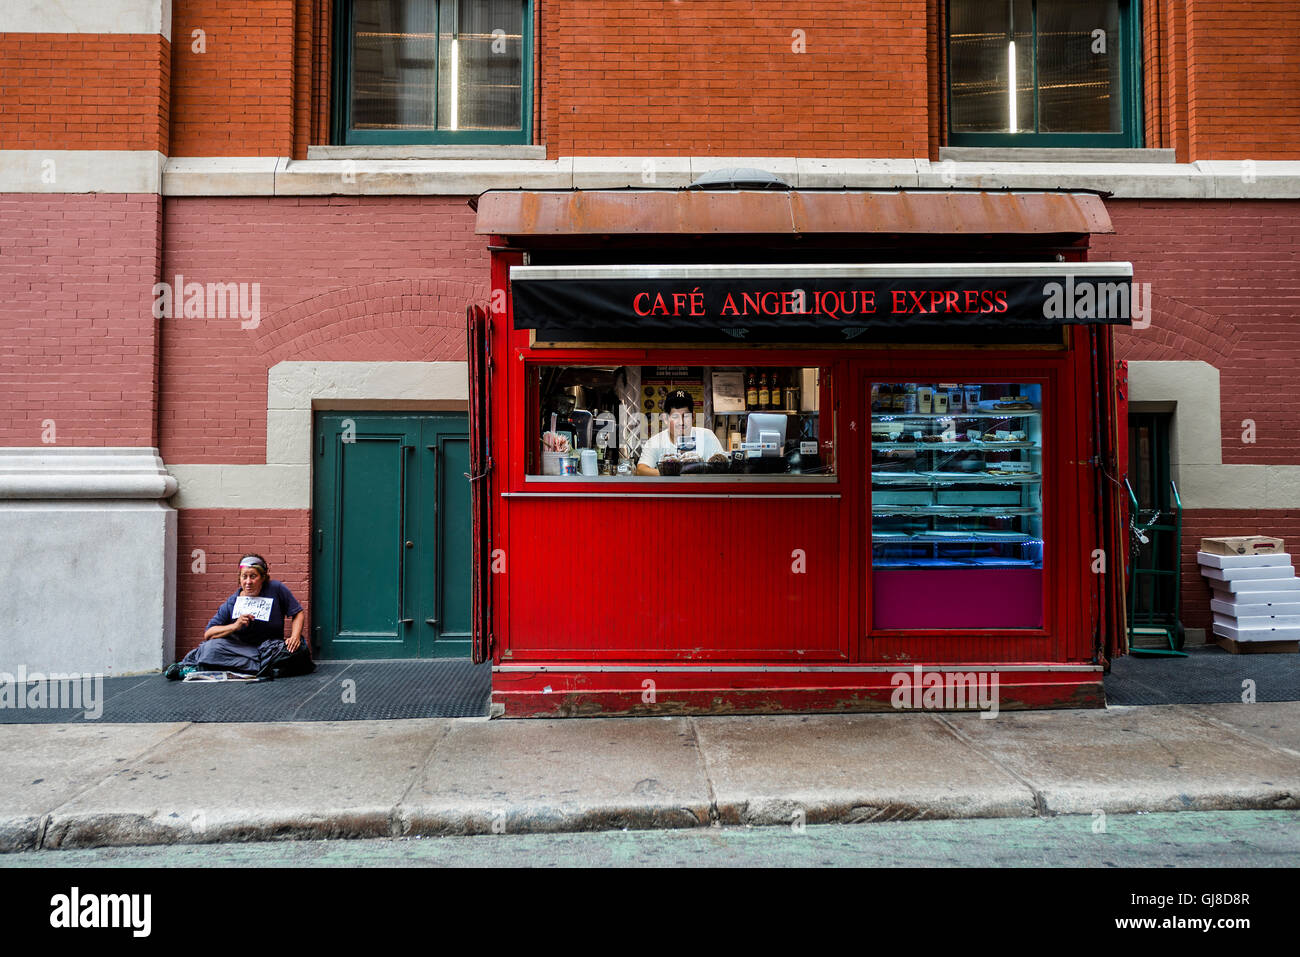 New York, USA - 8 Aug 2016 - Take out lunch shed on Prince Street in Soho ©Stacy Walsh Rosenstock/Alamy - Stock Image